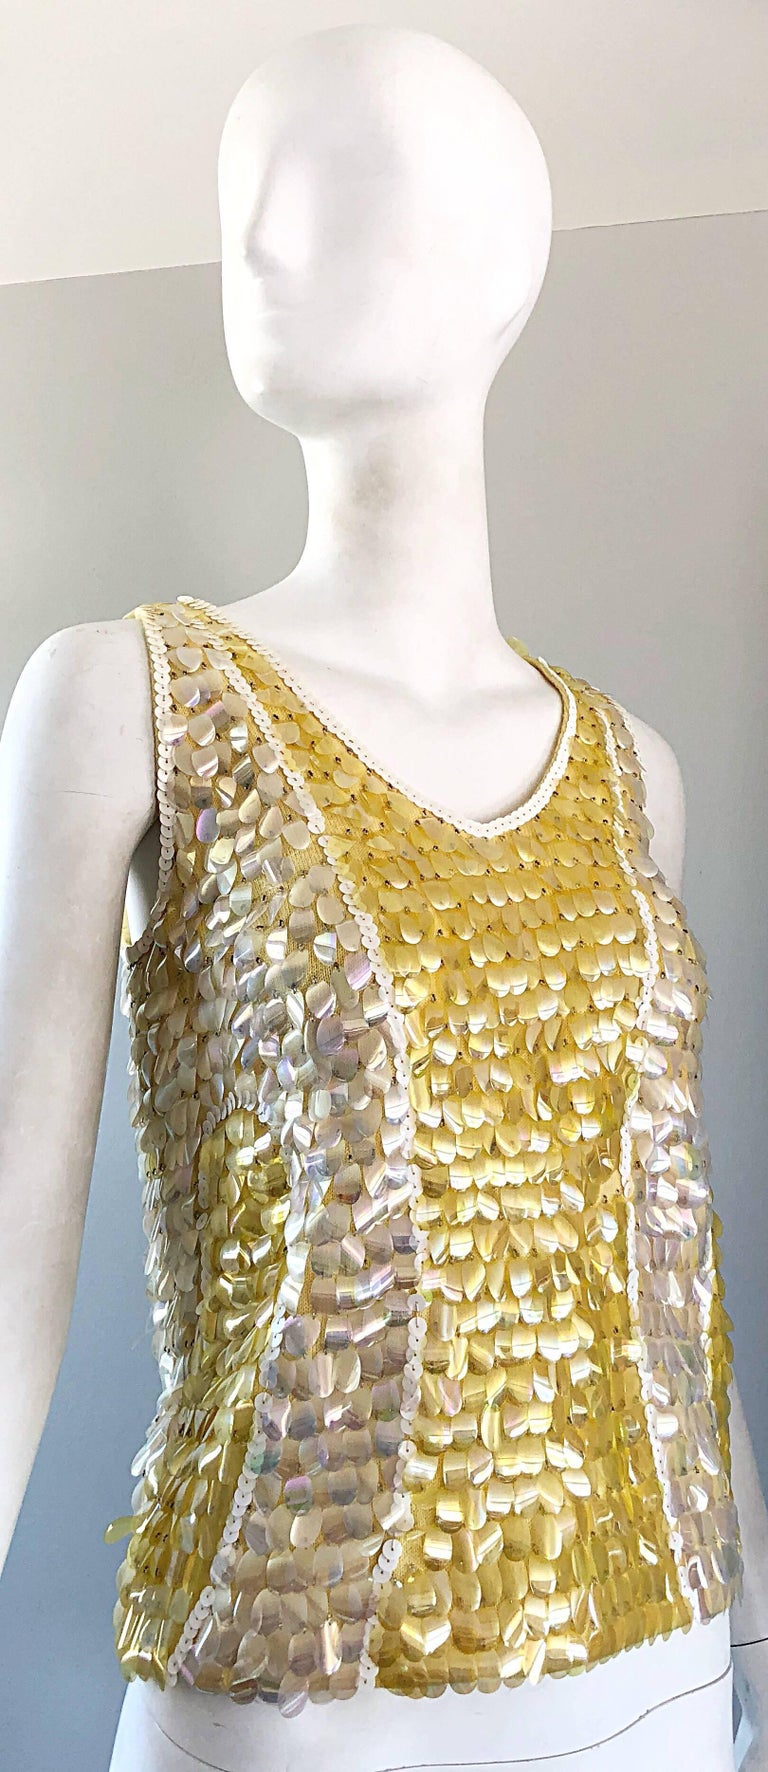 1960s Yellow + White + Clear Paillettes Sequined Lamb's Wool Sleeveless 60s Top For Sale 4